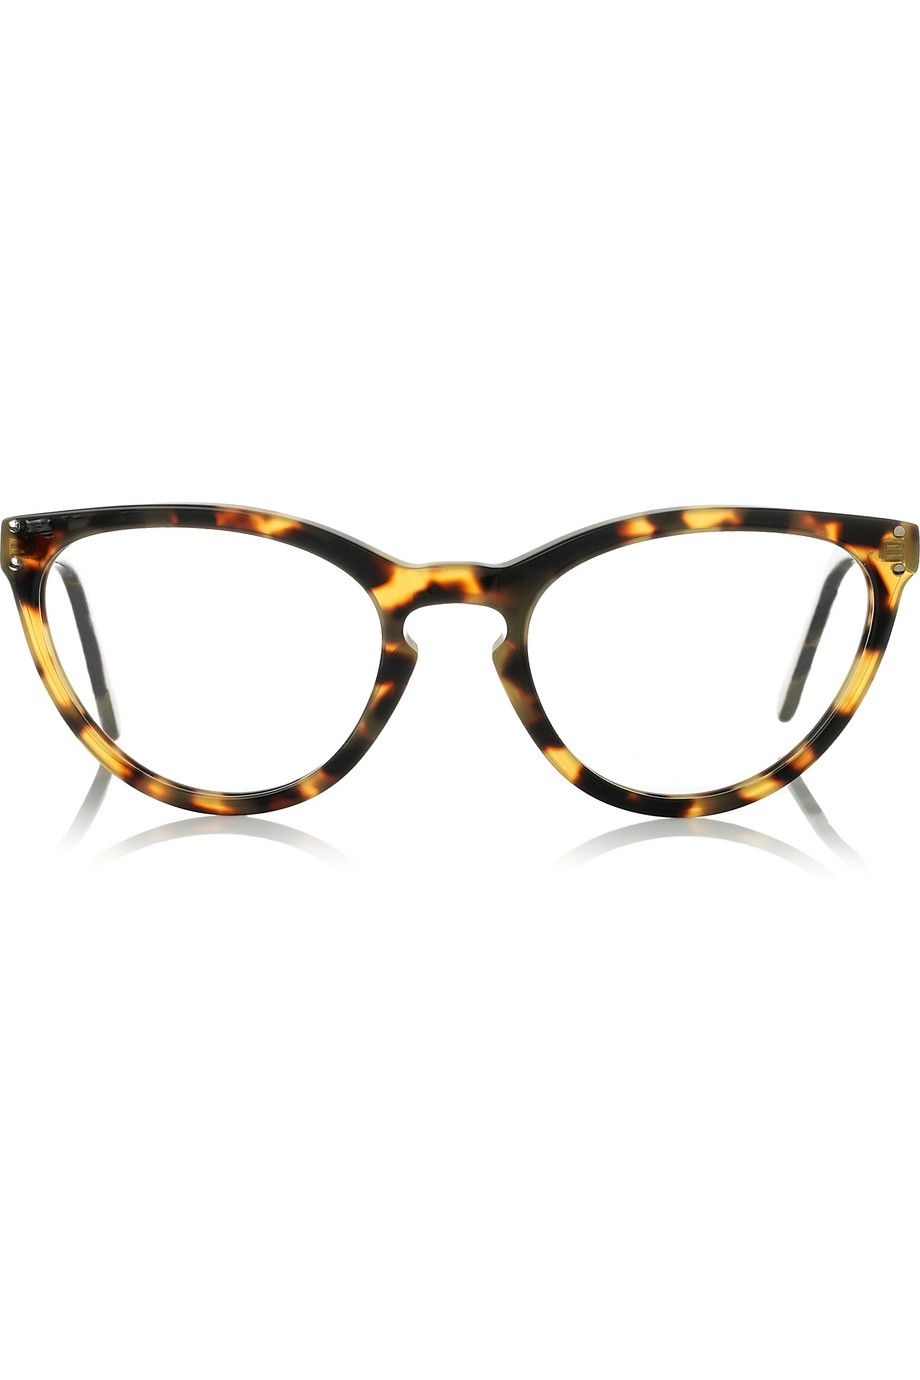 Selima Optique Jessica cat eye-frame acetate optical glasses ... 0b86d531c713